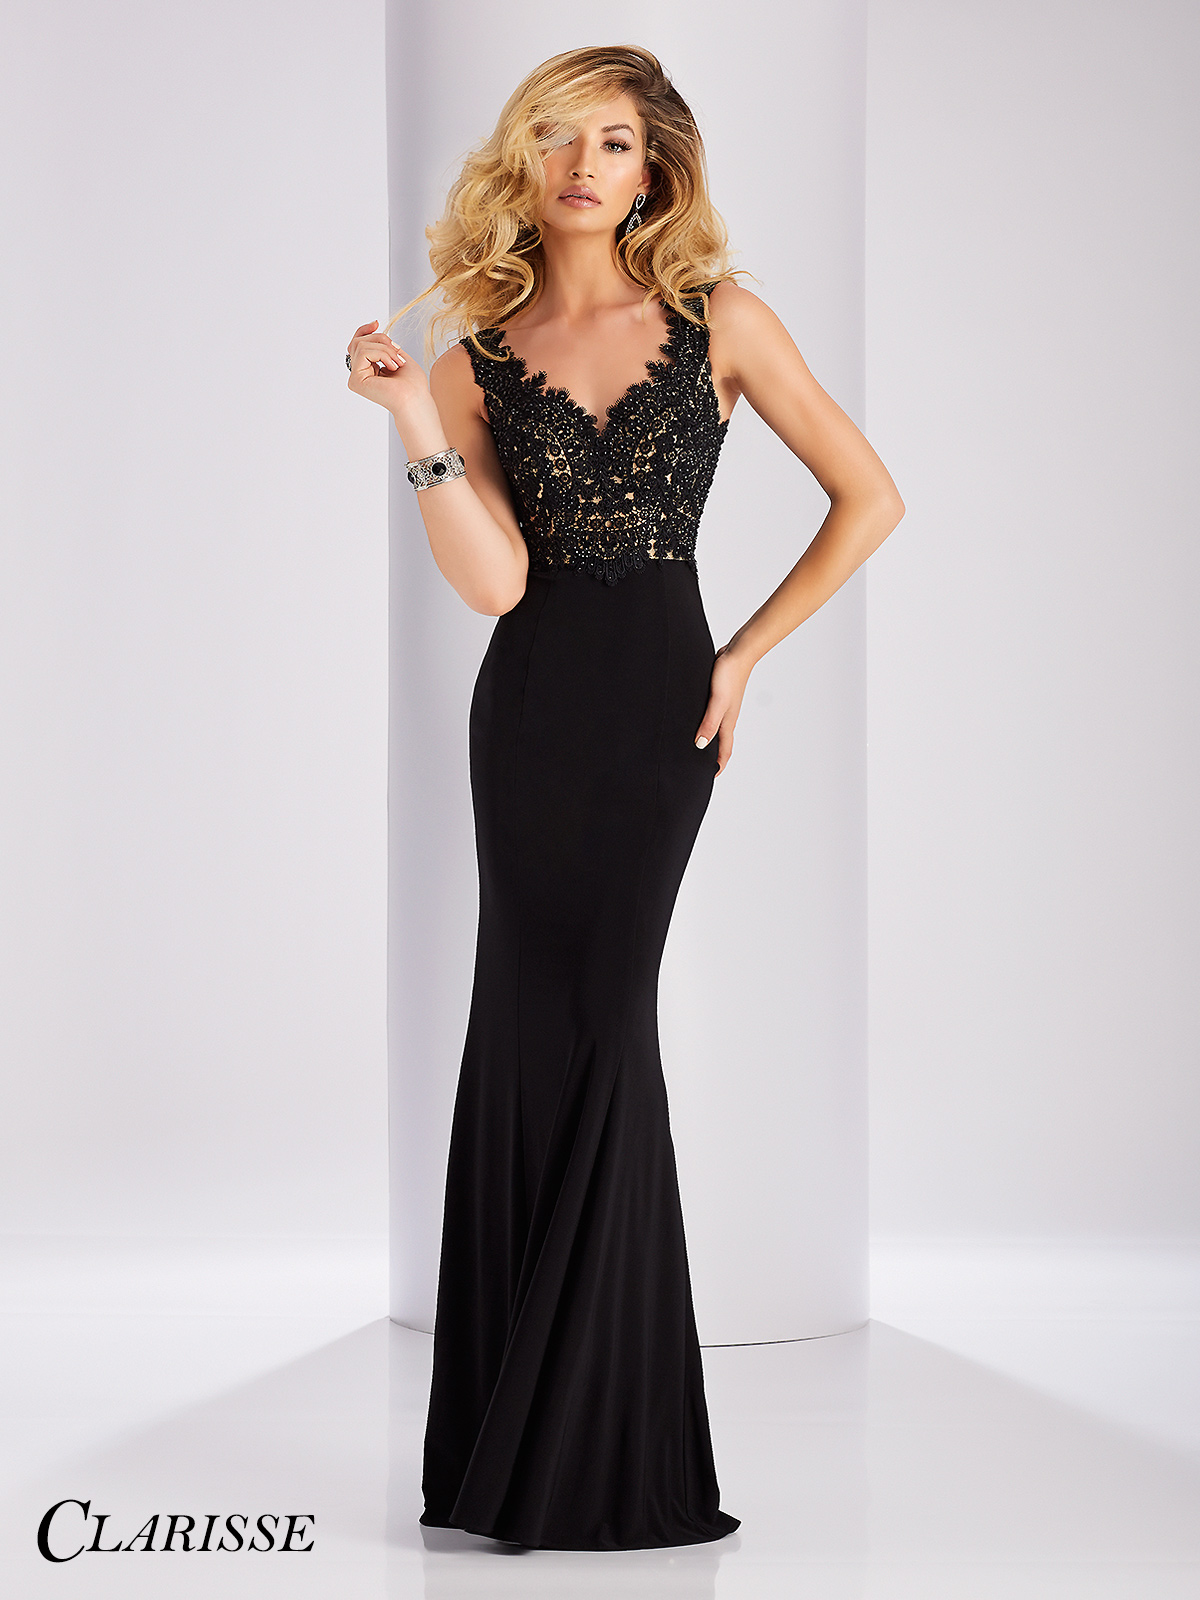 Clarisse Prom Dress 3108 | Promgirl.net